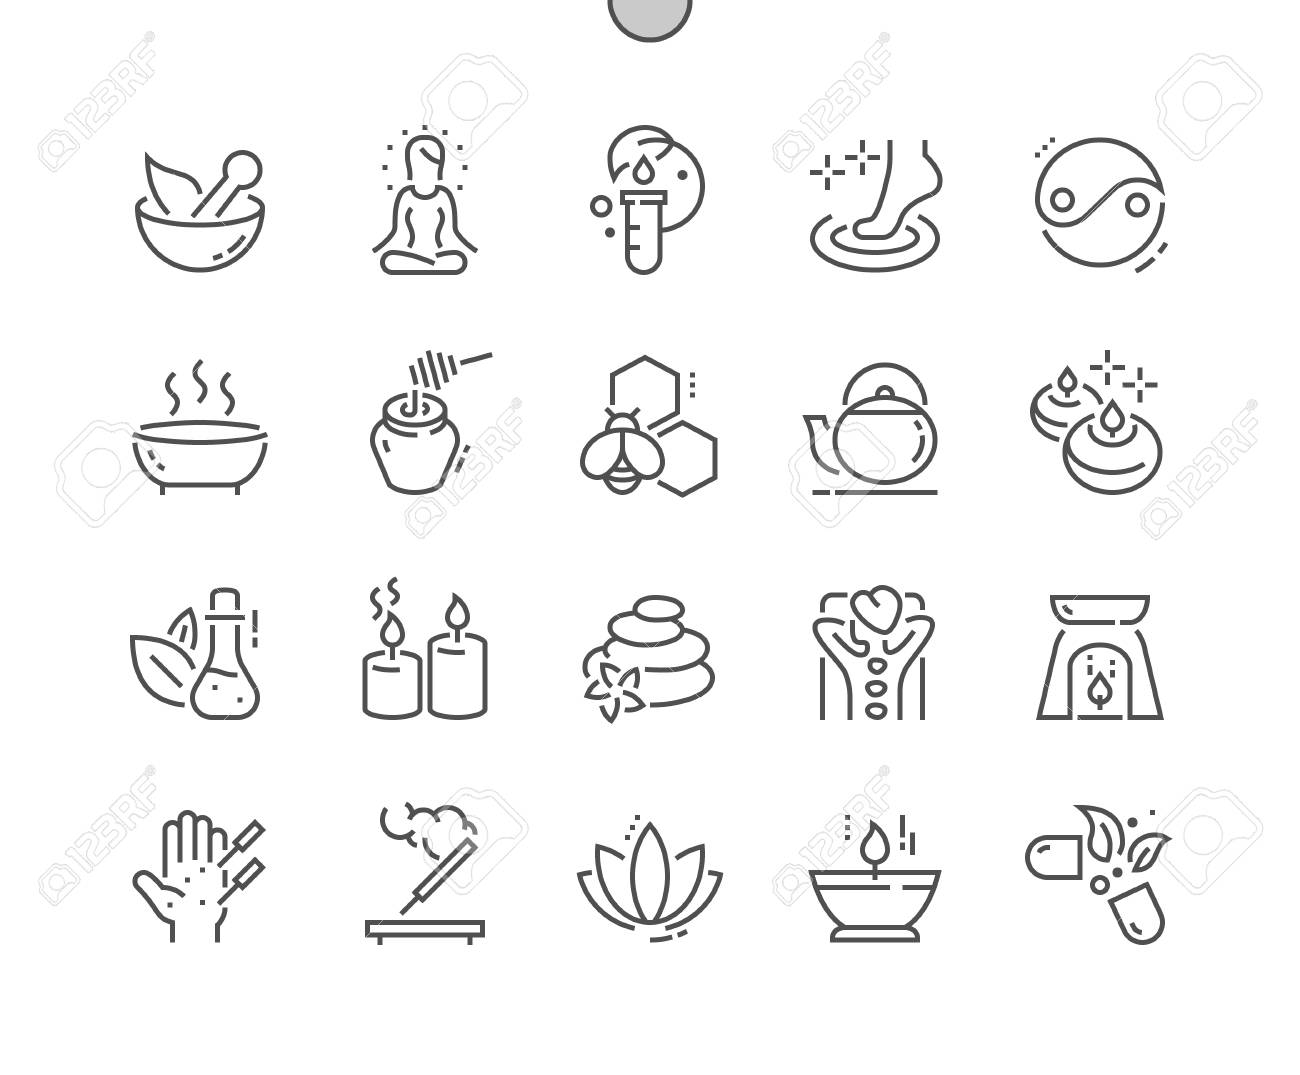 Alternative medicine Well-crafted Pixel Perfect Vector Thin Line Icons 30 2x Grid for Web Graphics and Apps. Simple Minimal Pictogram - 98141114